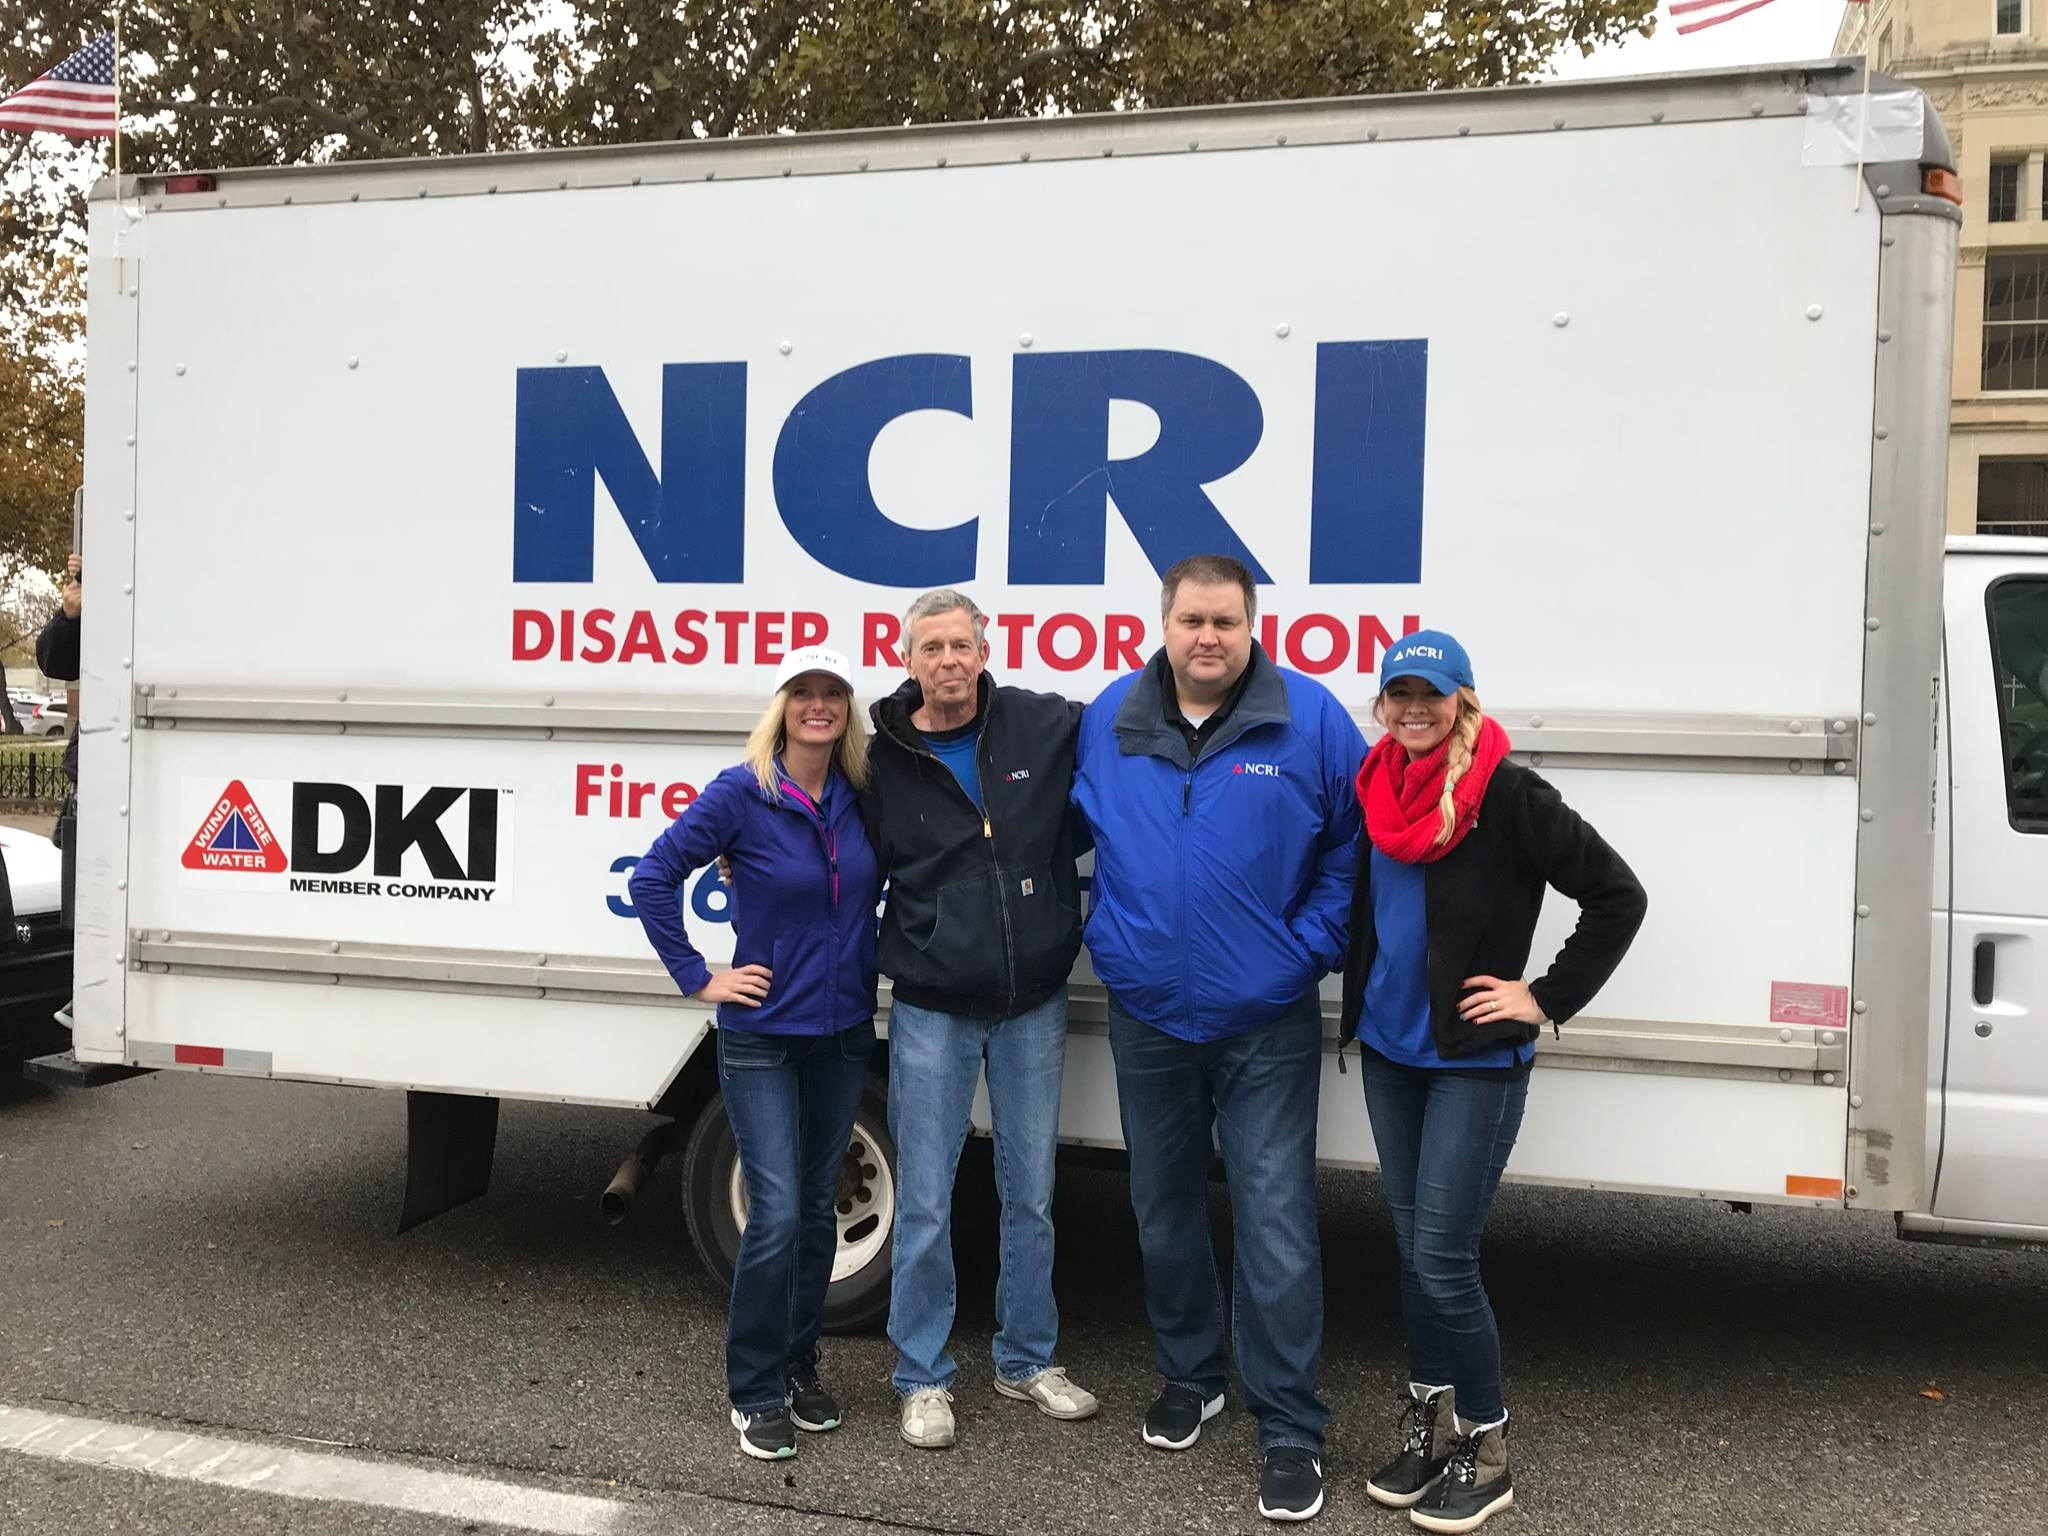 4 NCRI Disaster Restoration employees pose for a picture in front of service truck